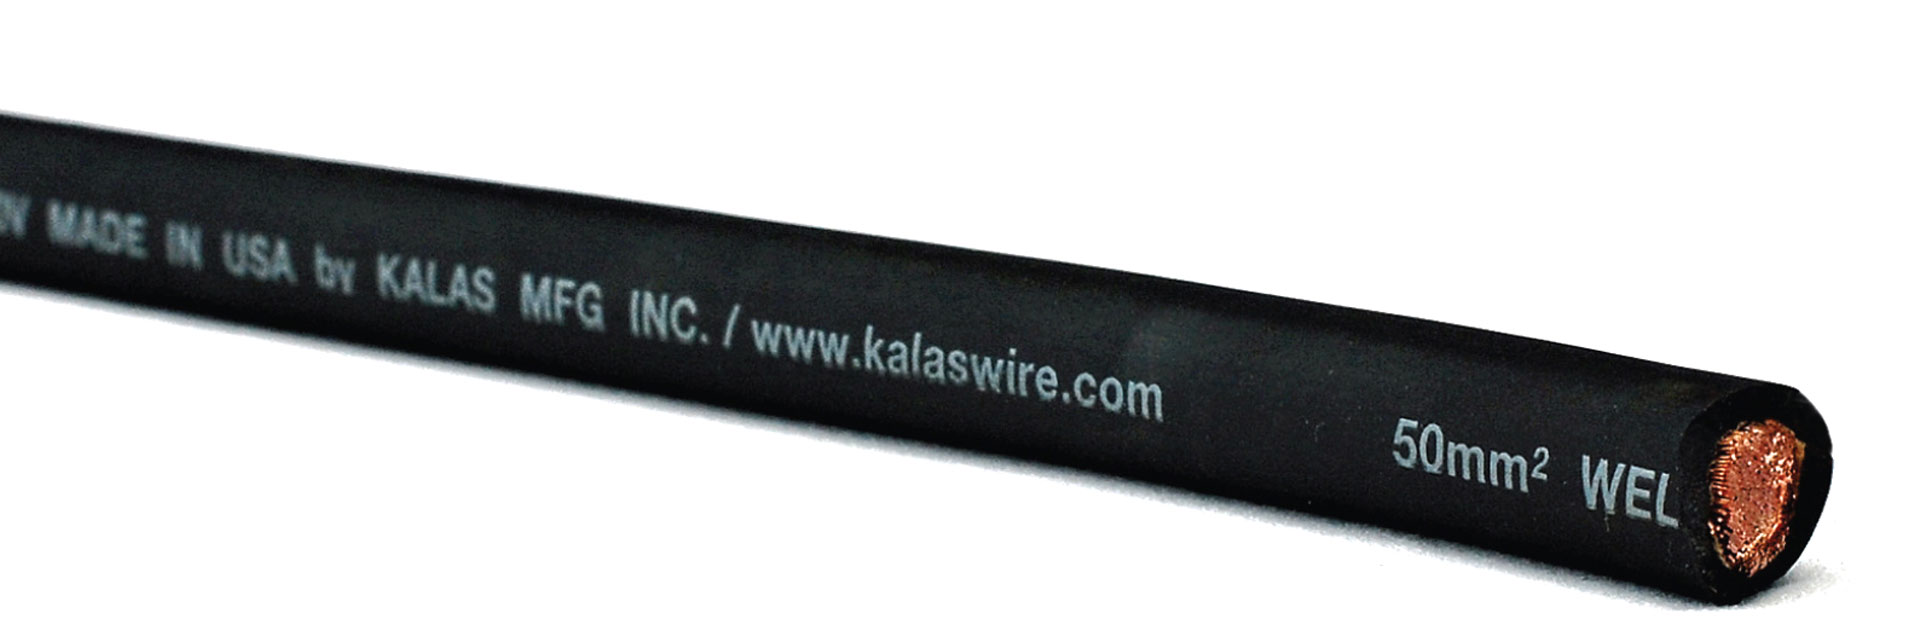 Kalas METRIC WELDING CABLE